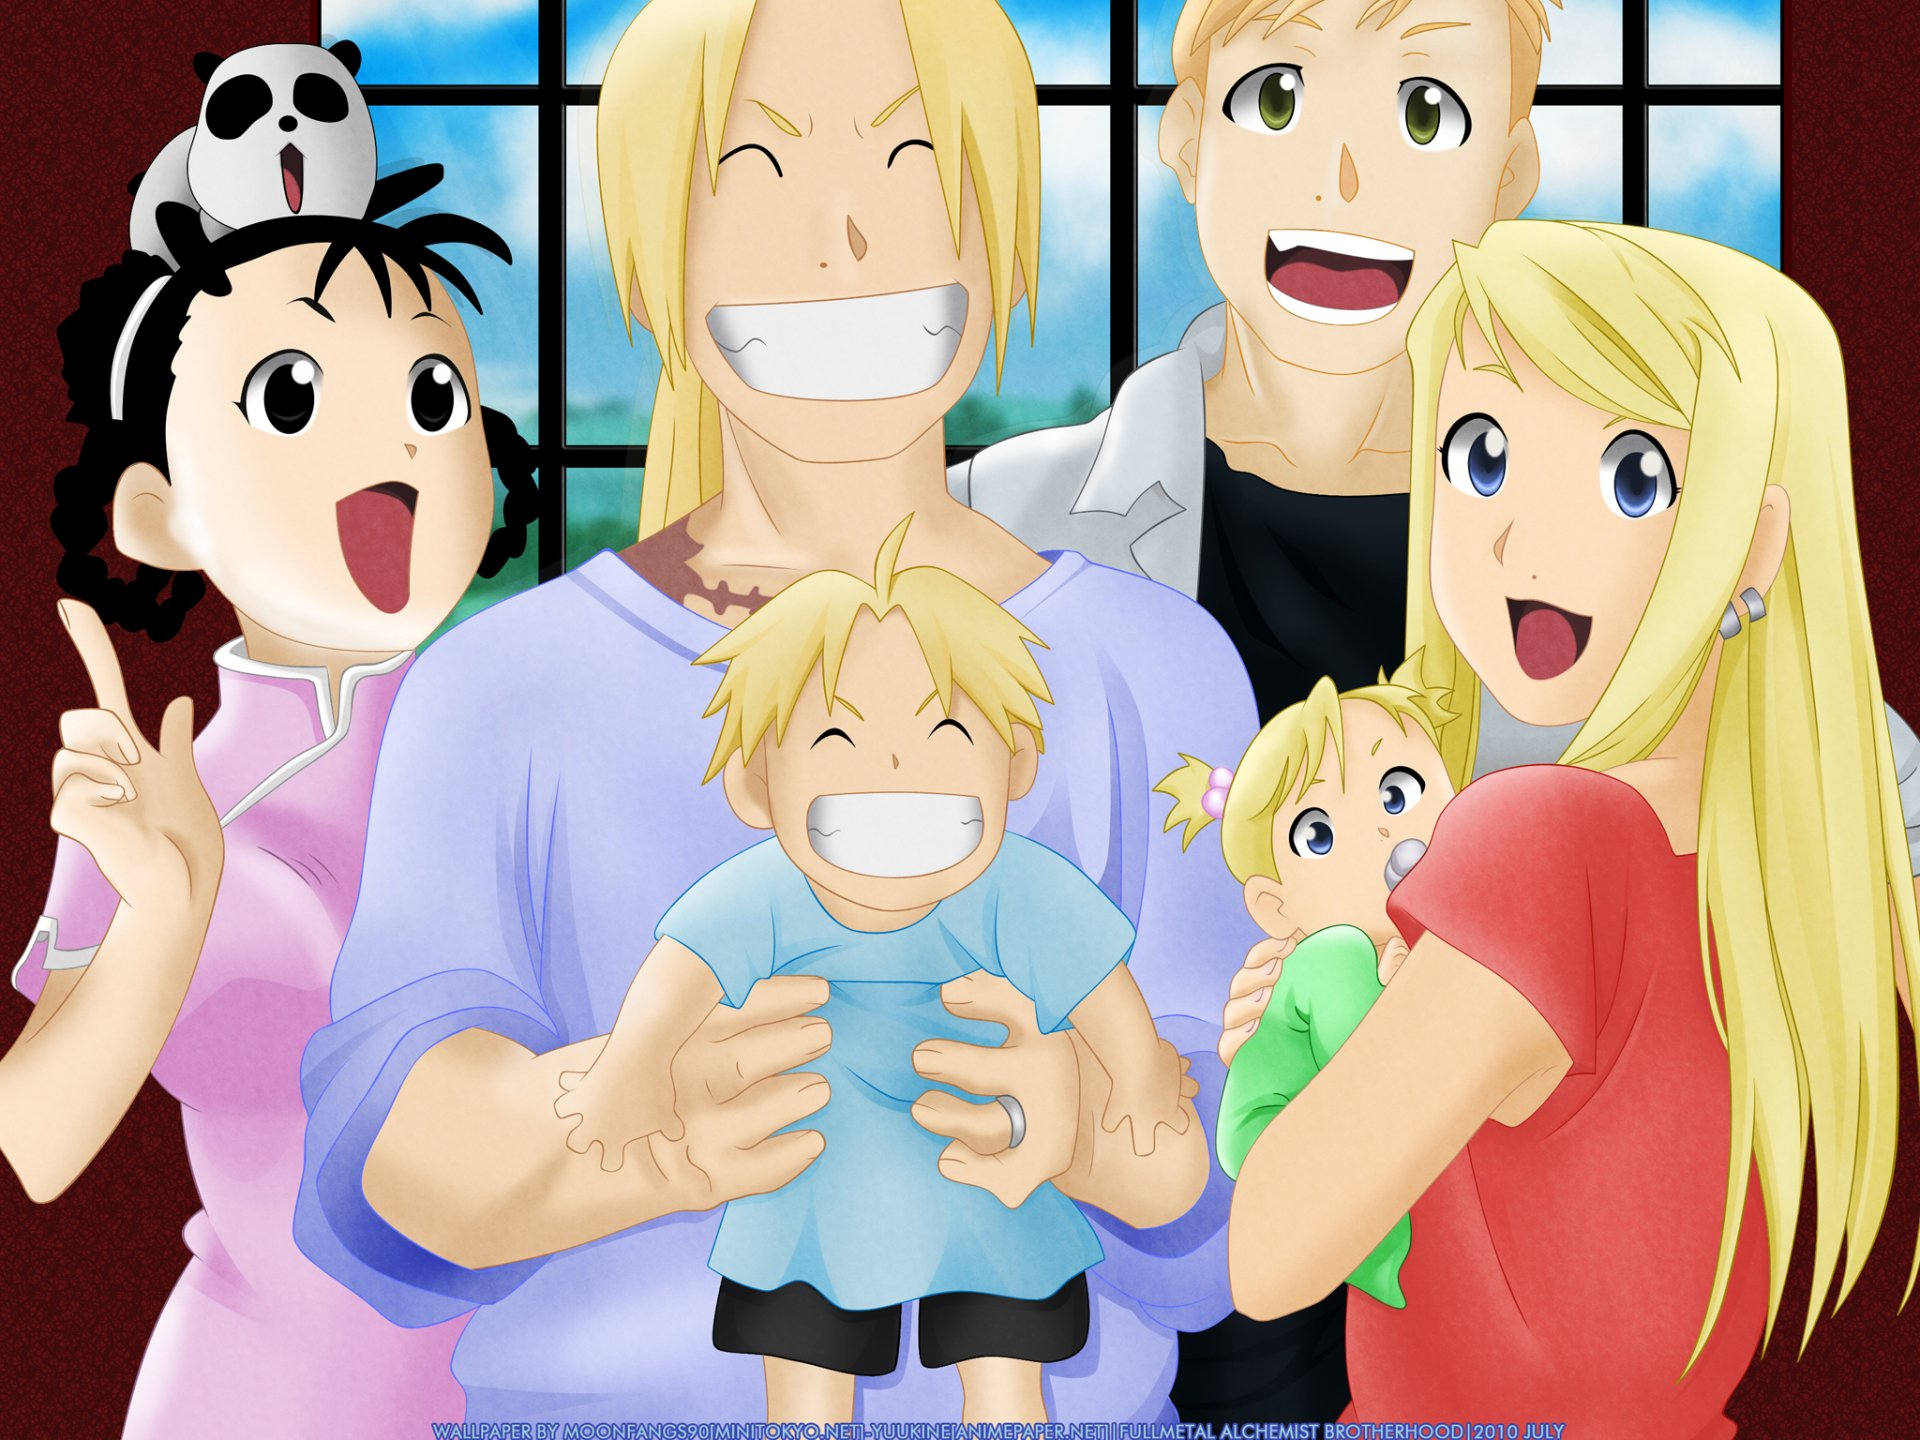 Anime - FullMetal Alchemist  Shao May Winry Rockbell Edward Elric Alphonse Elric May Chang Wallpaper